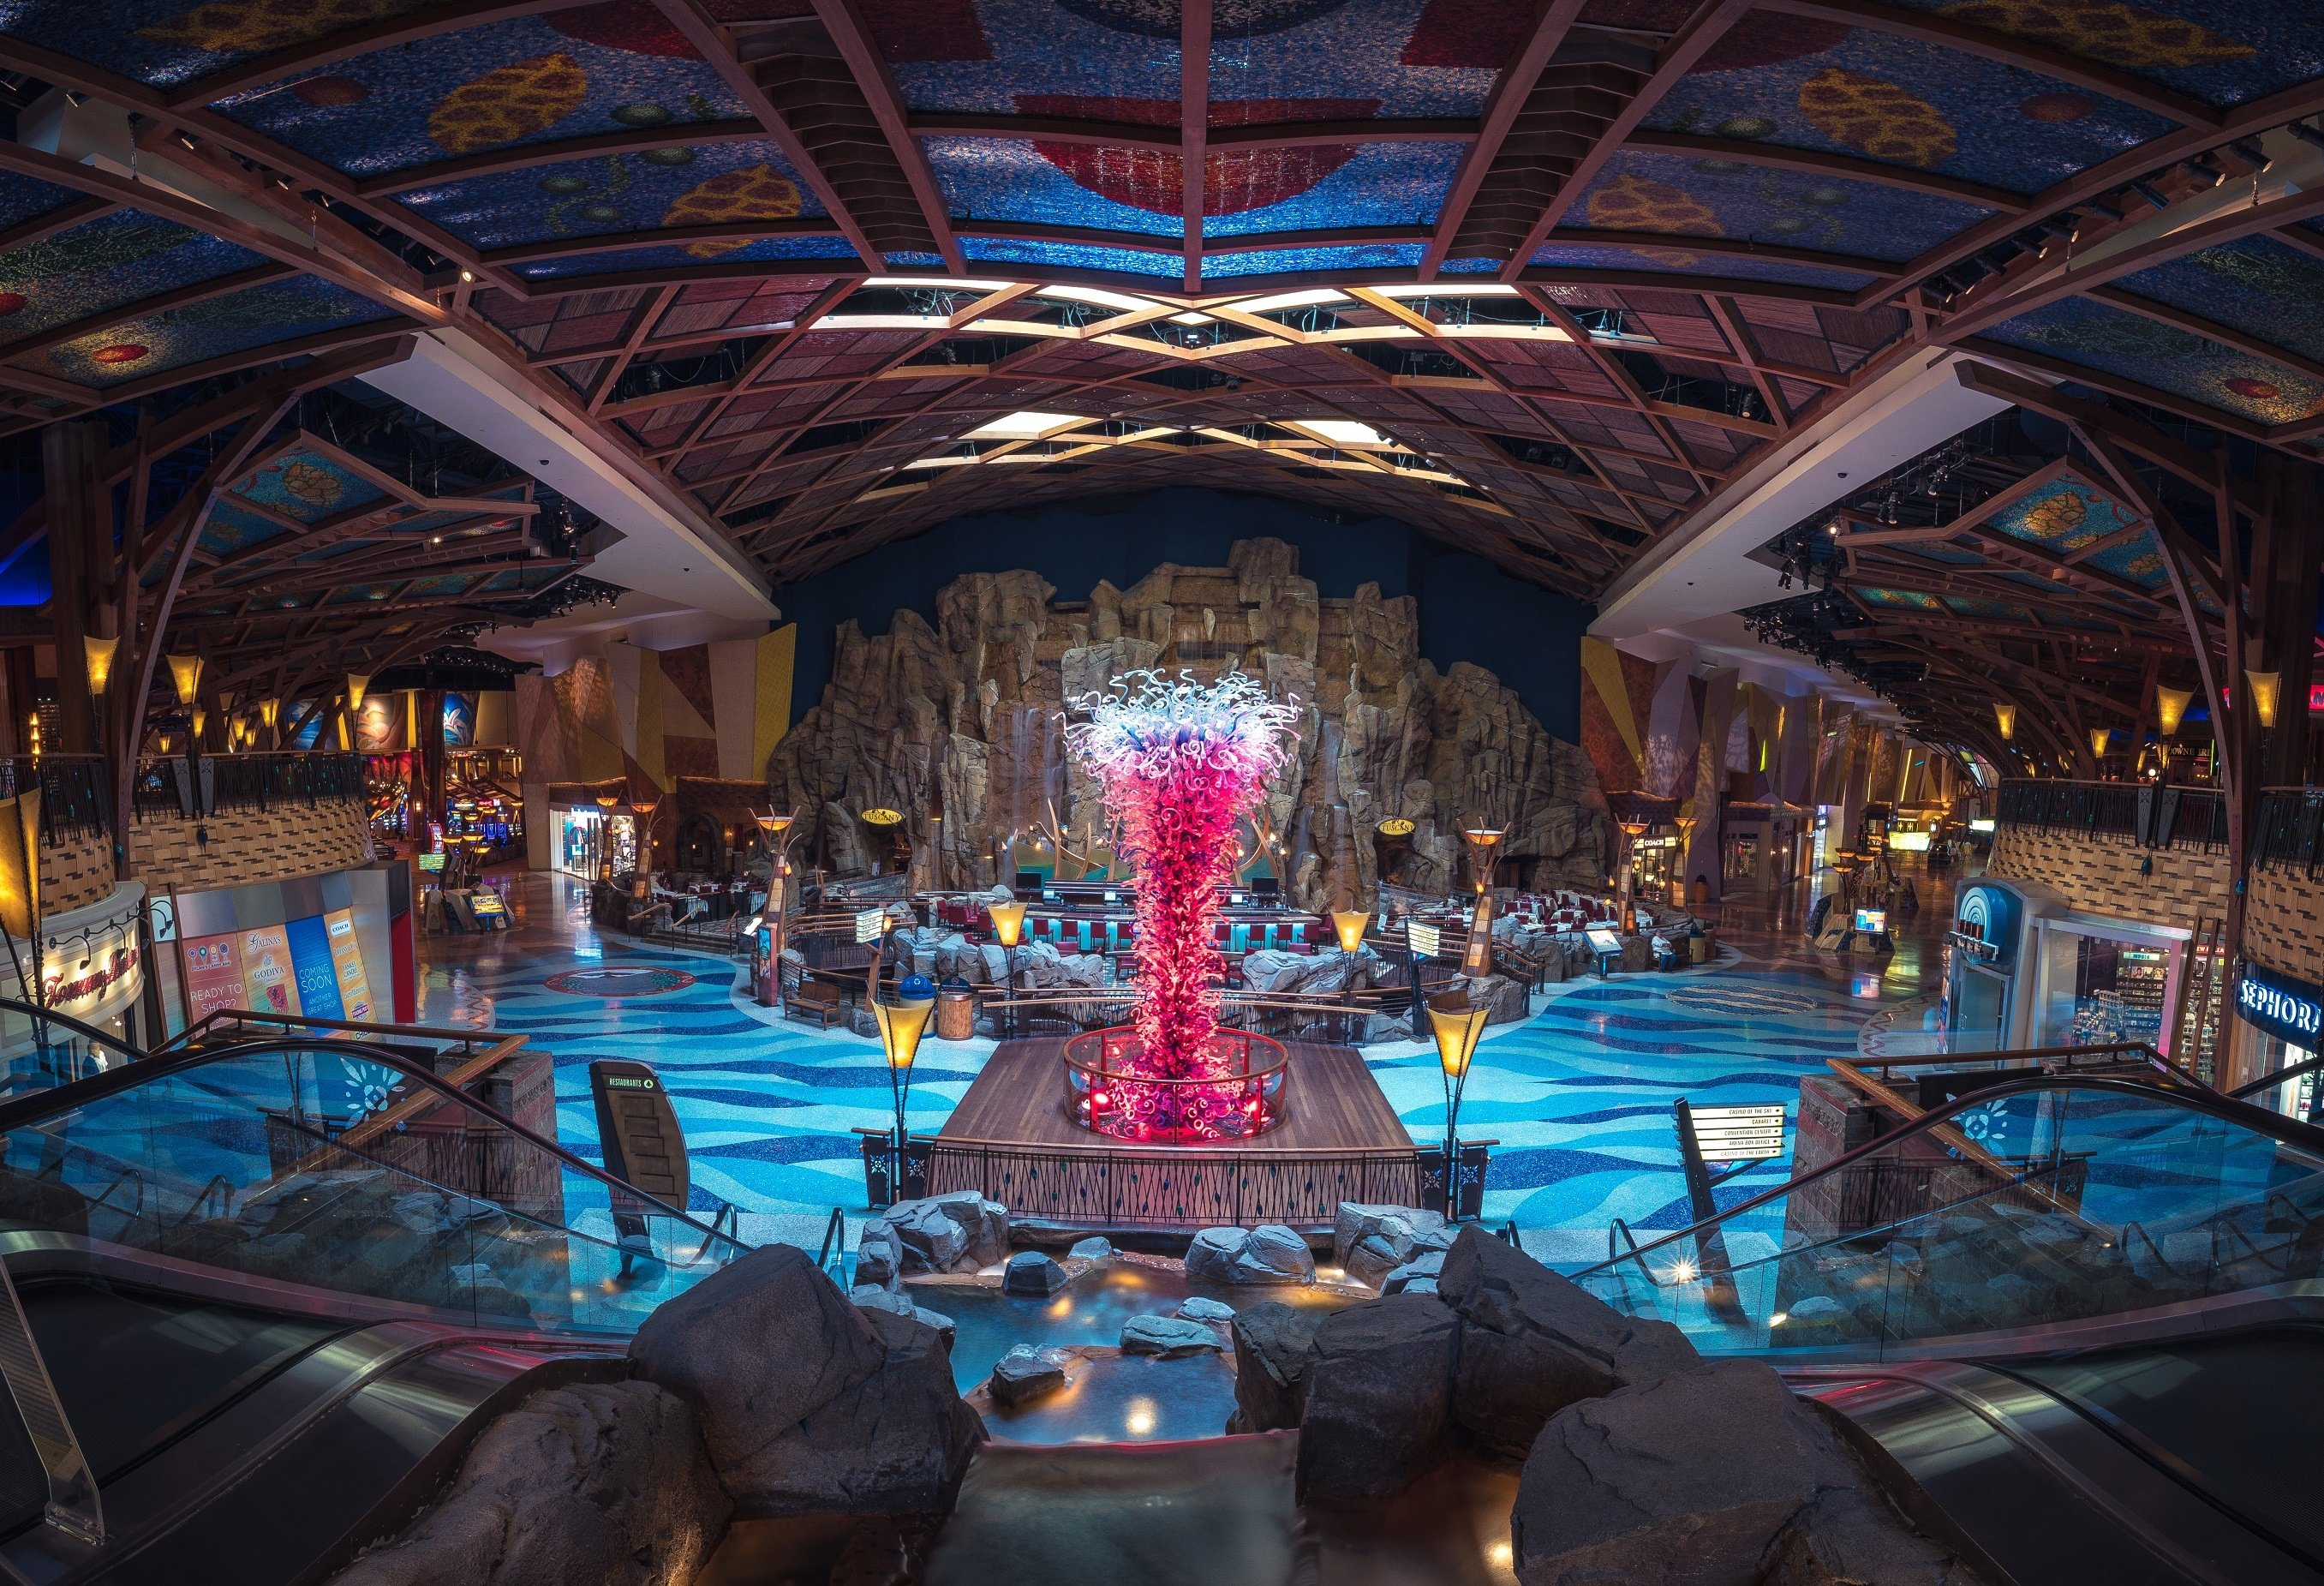 Inside the Mohegan Sun Casino and Resort